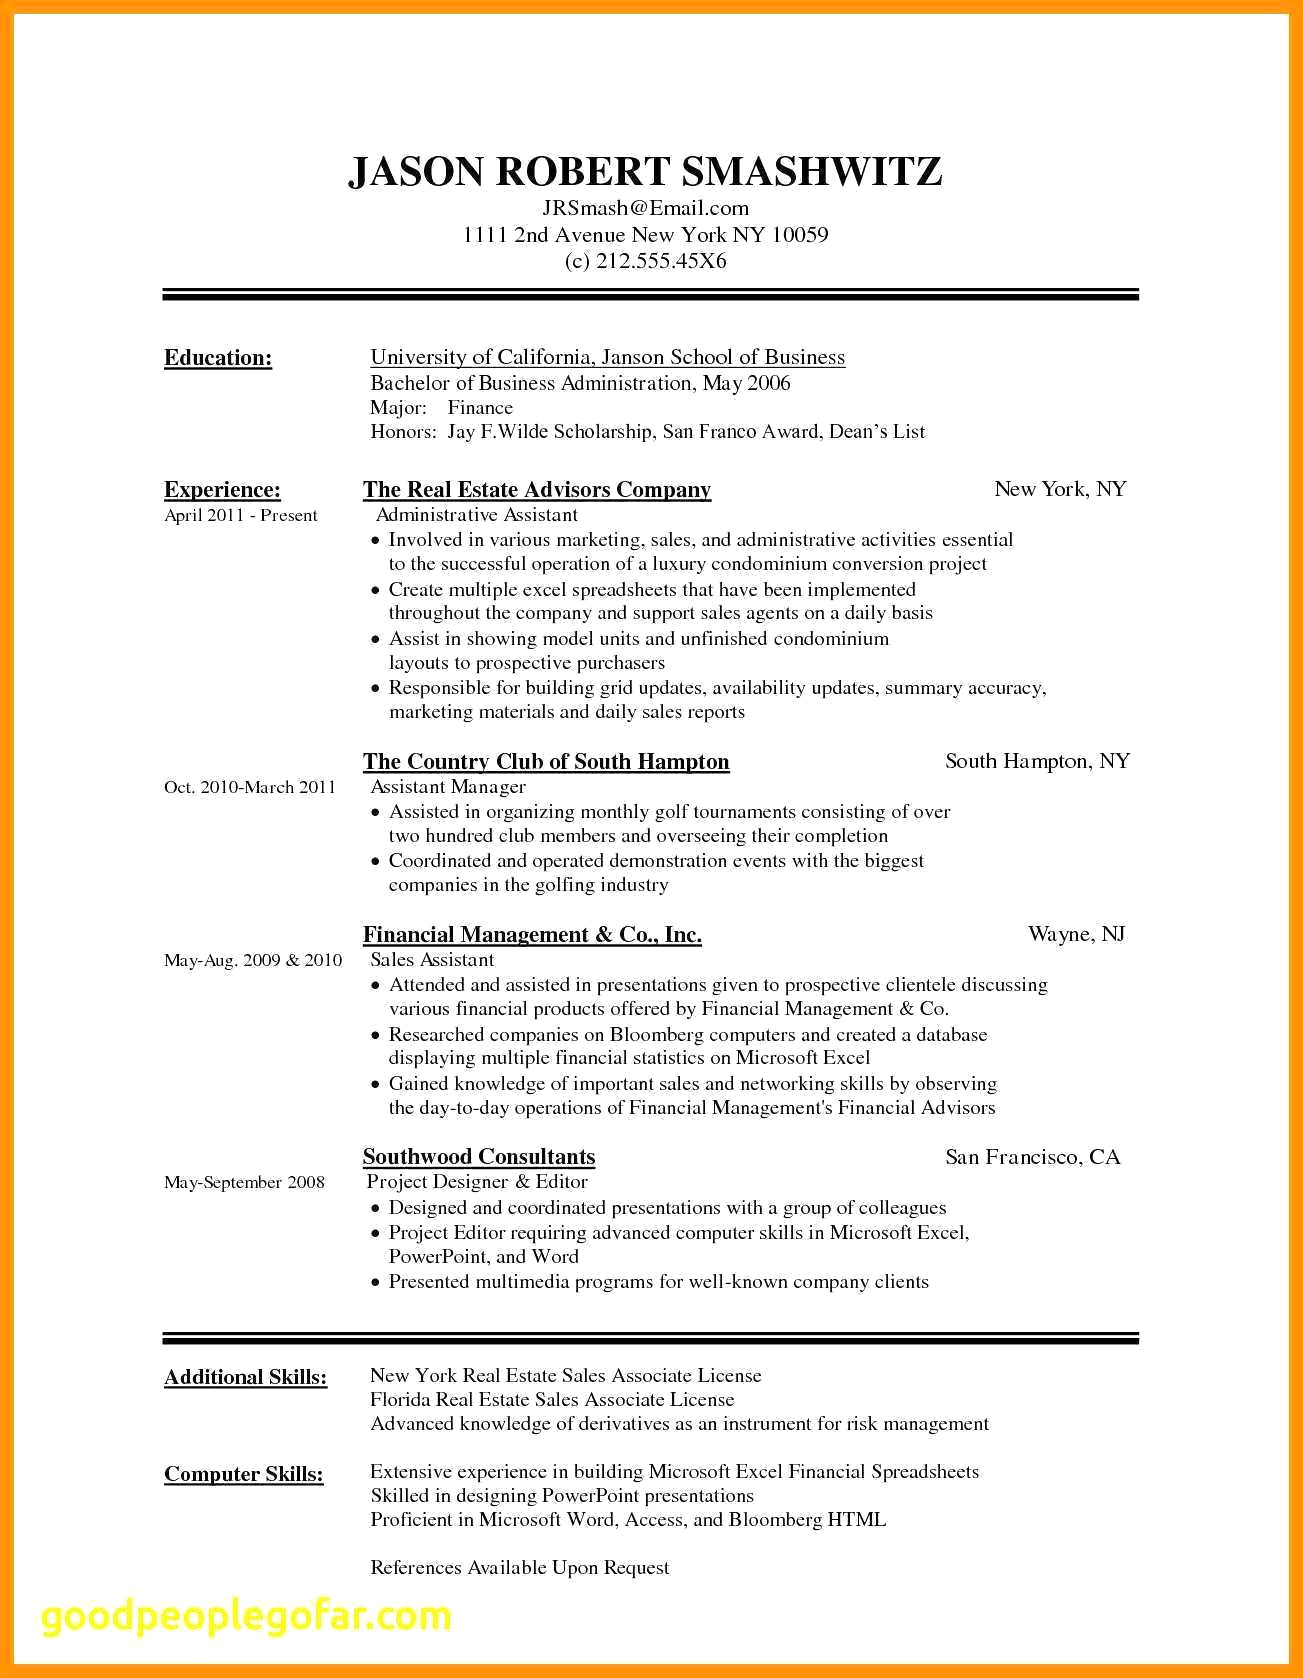 Cosmetology Resume Template Free - 35 New Free Resume Templates Downloads